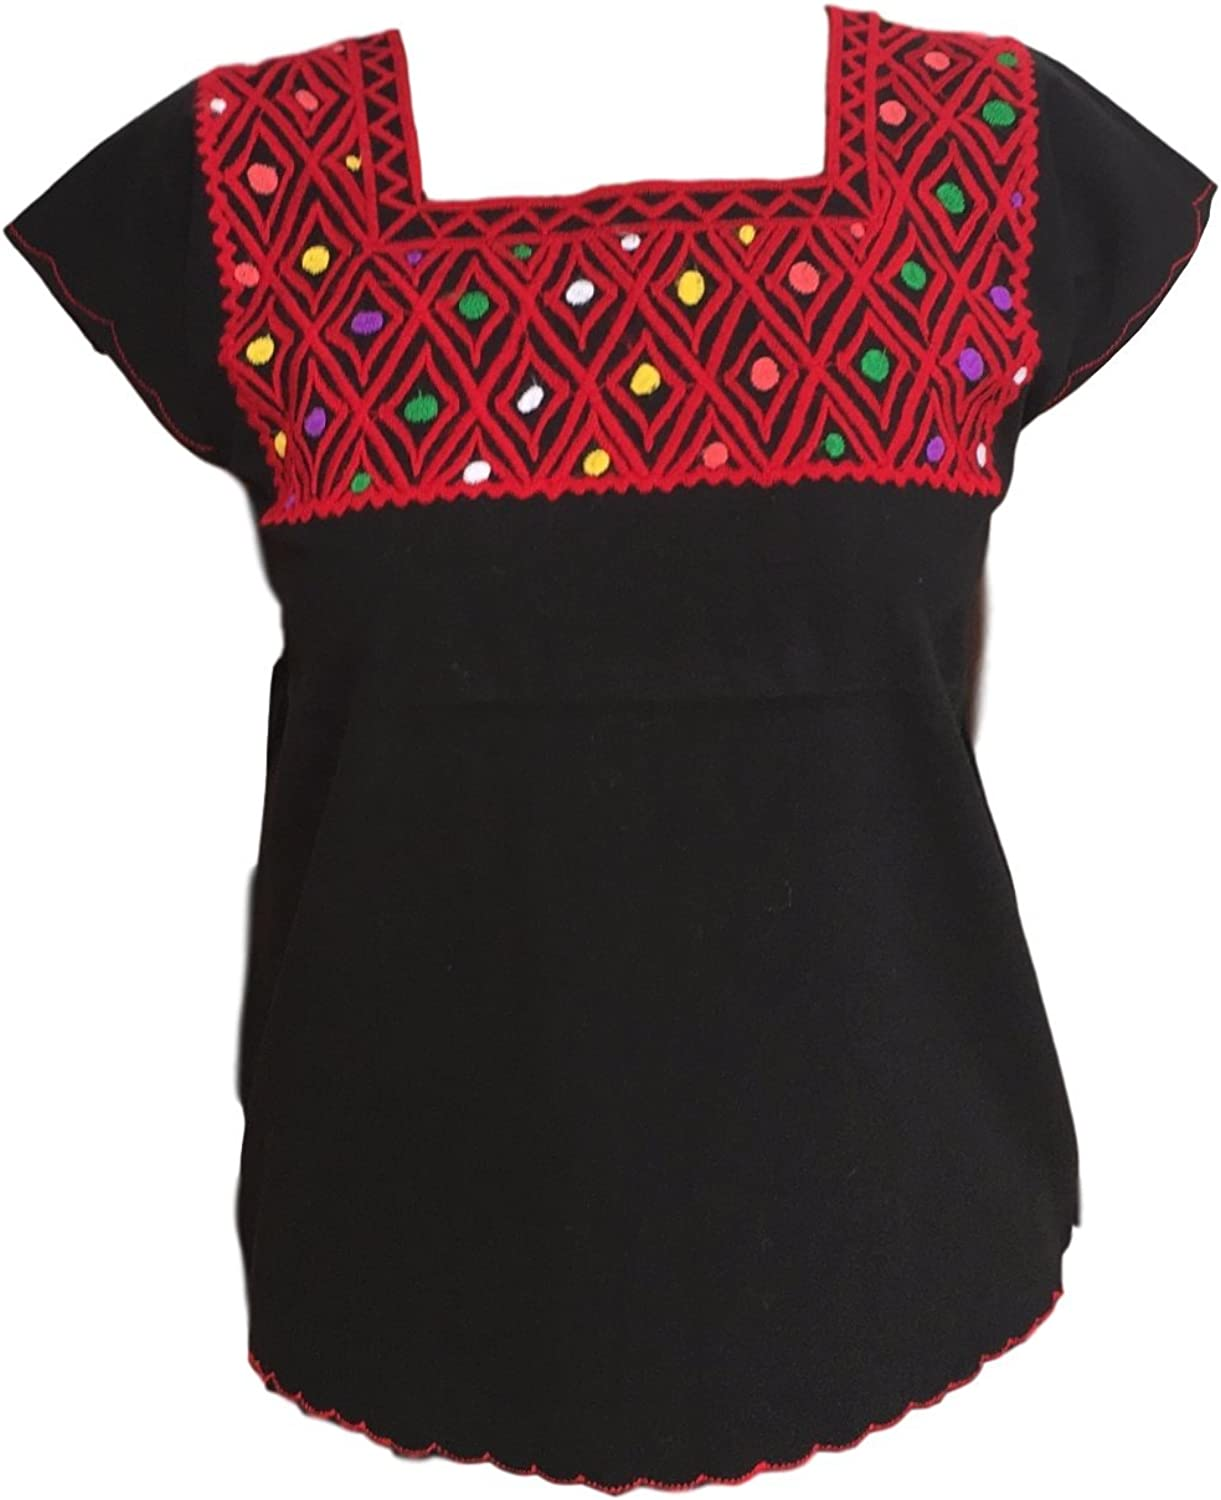 Casa Fiesta Designs Mexican Blouse  Embroidered  Authentic  Handmade  Cotton  Black